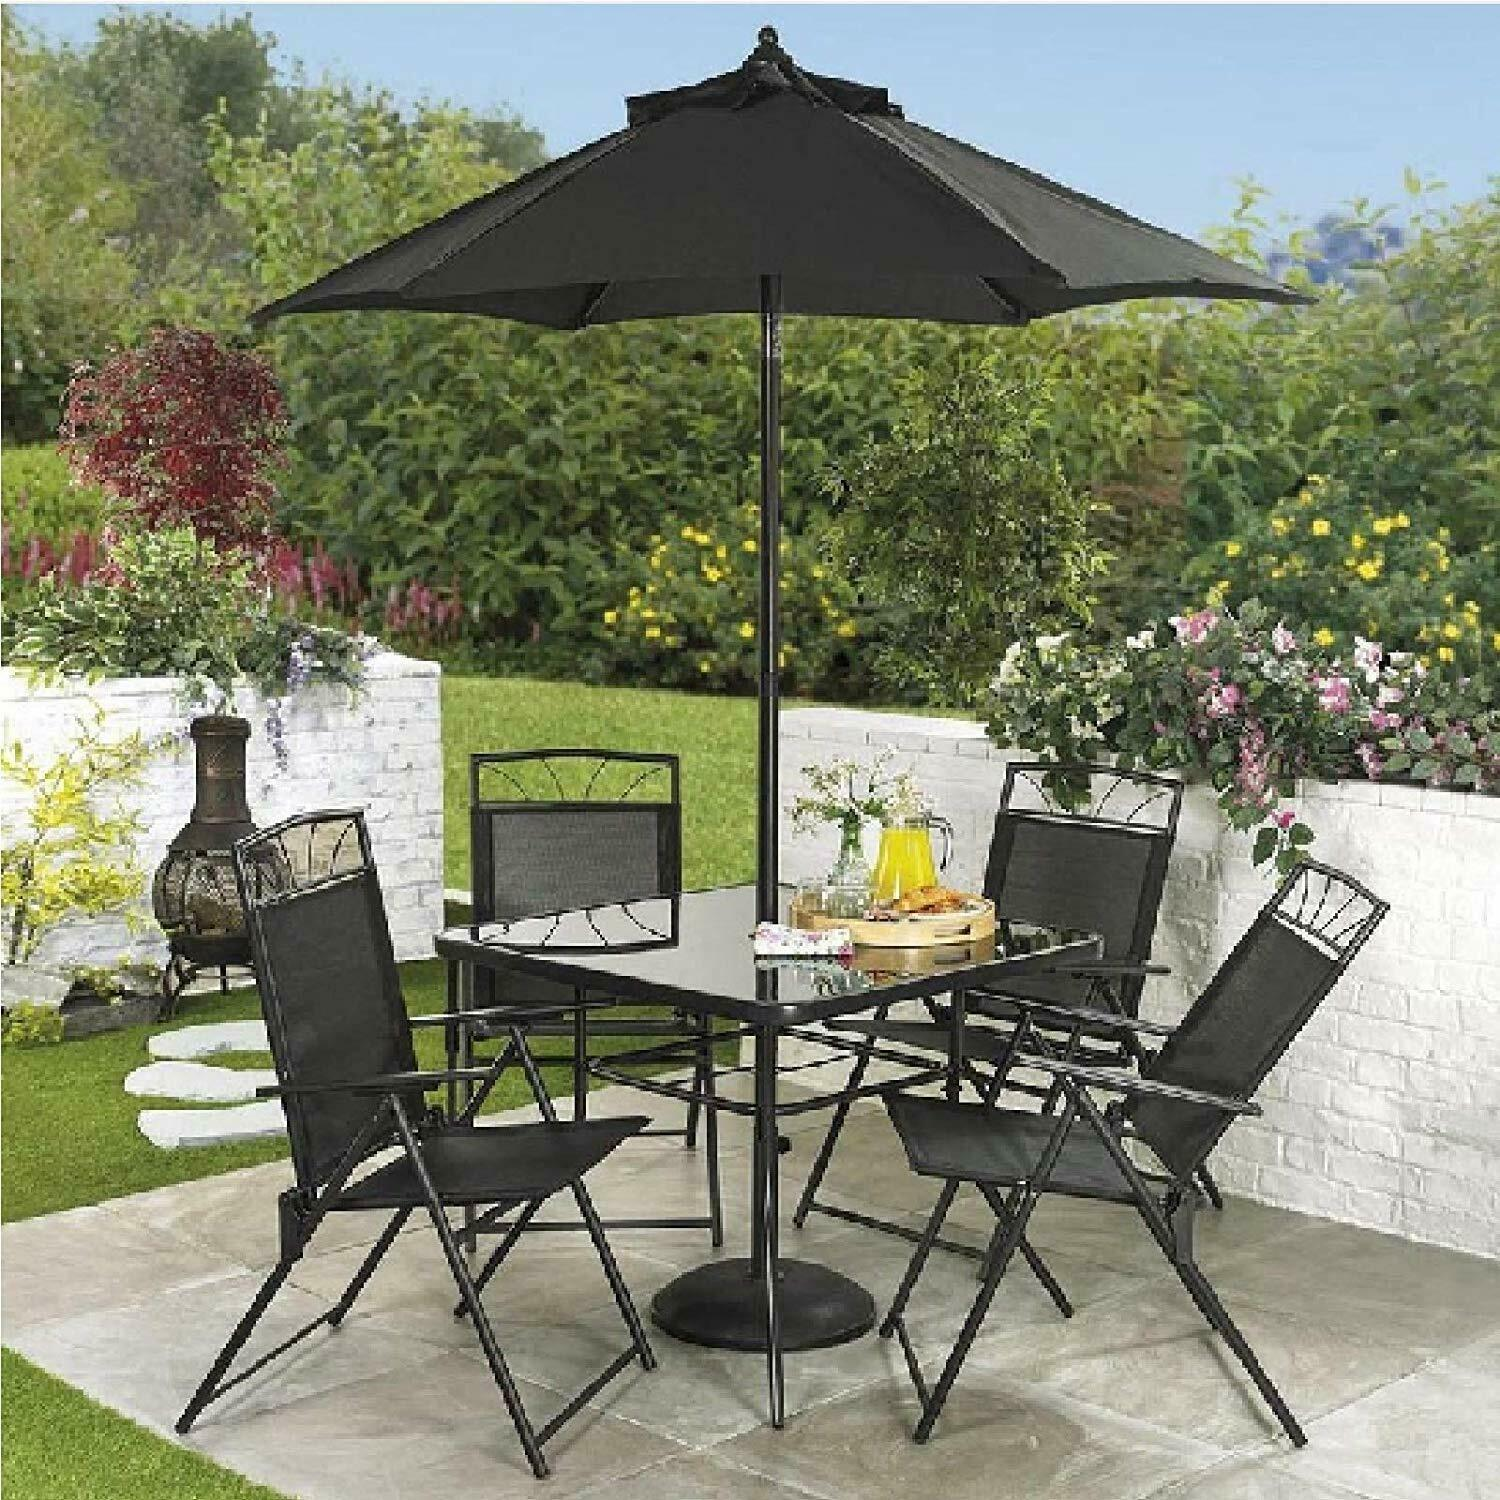 Garden Furniture - 4  Seat Garden Dining Set Outdoor Patio Furniture Table Chairs Parasol 2 Colours